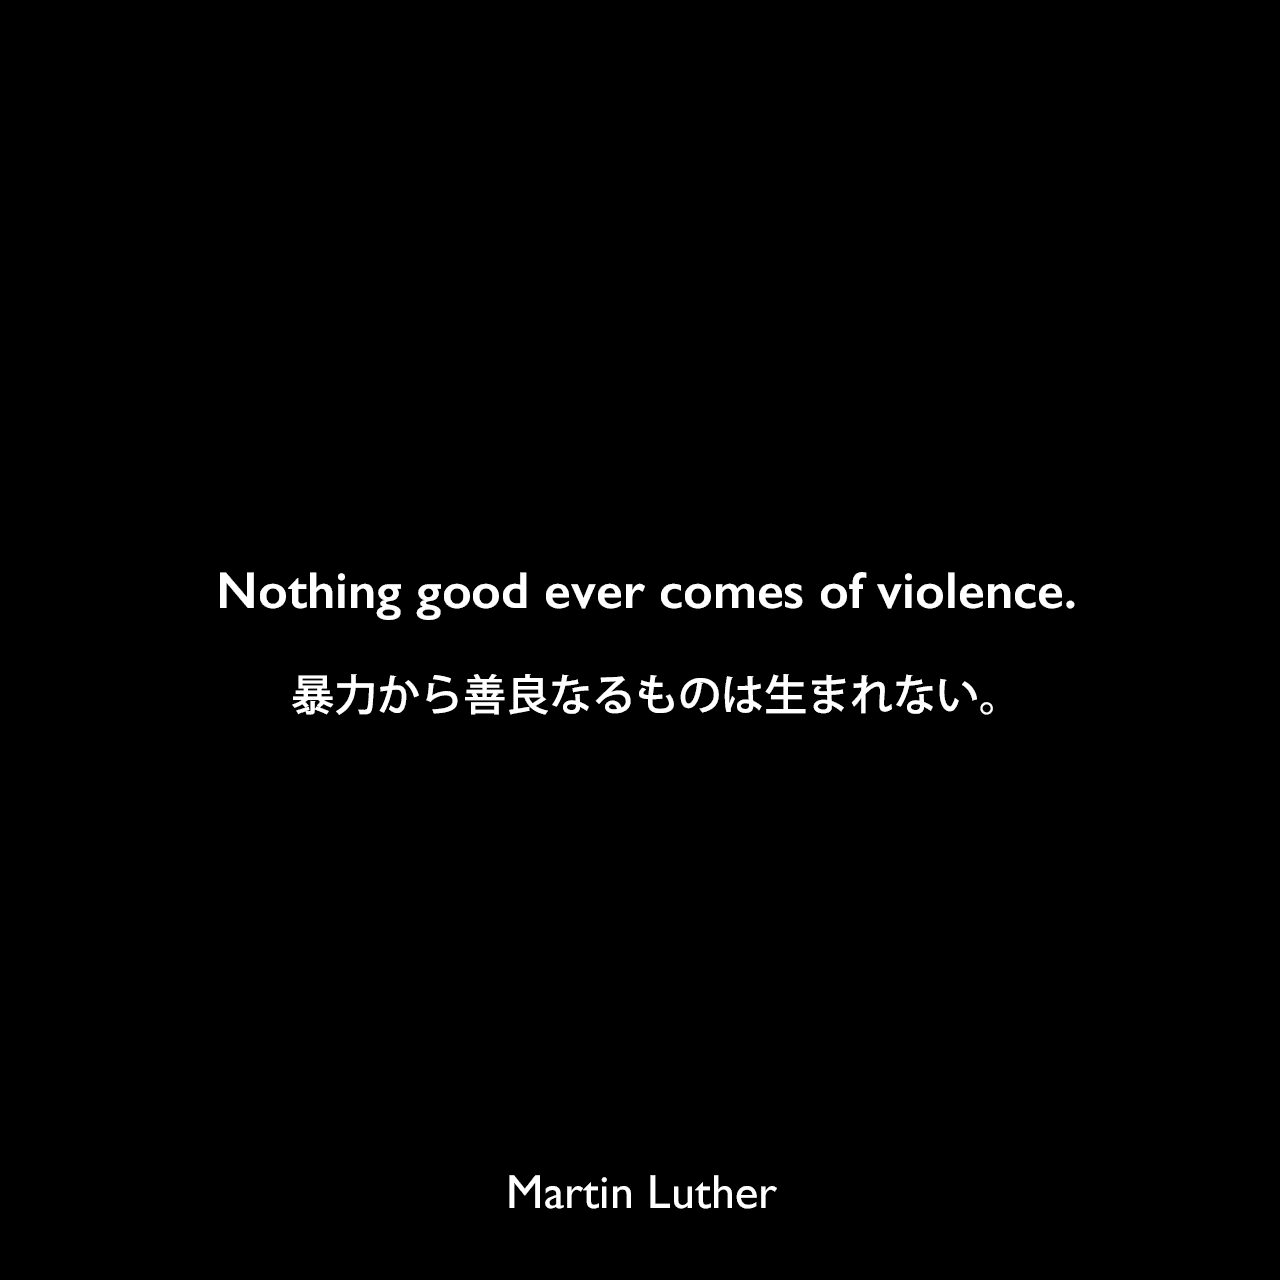 Nothing good ever comes of violence.暴力から善良なるものは生まれない。Martin Luther